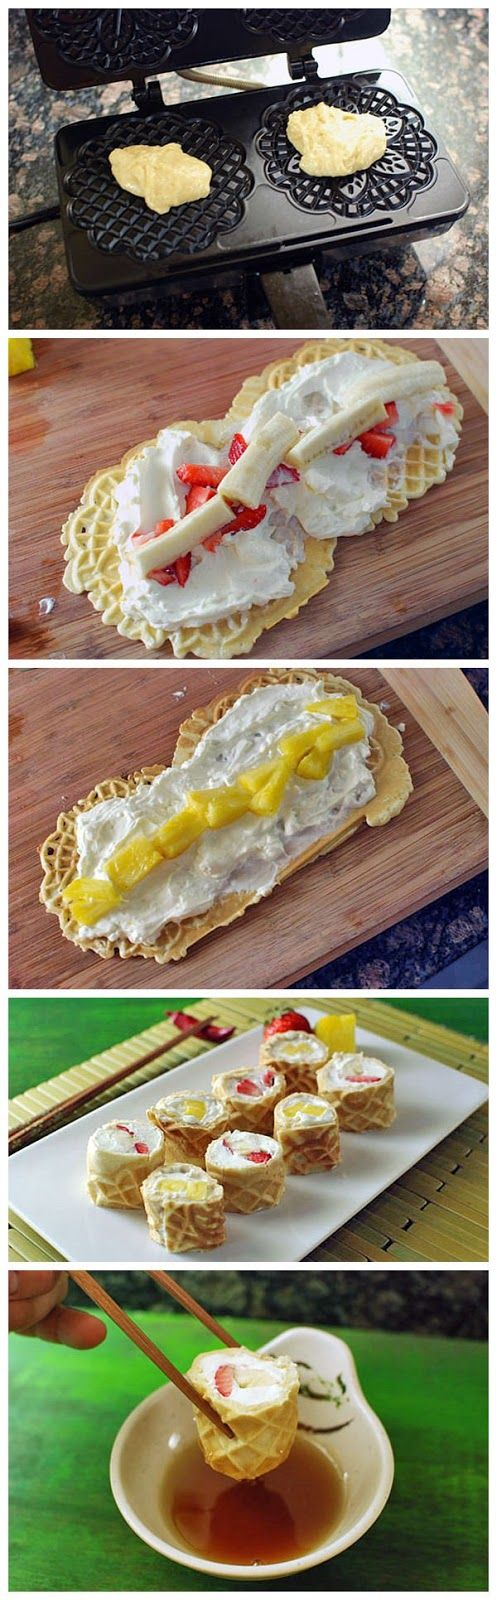 Breakfast will never be the same with 'Waffle Breakfast Sushi'!!